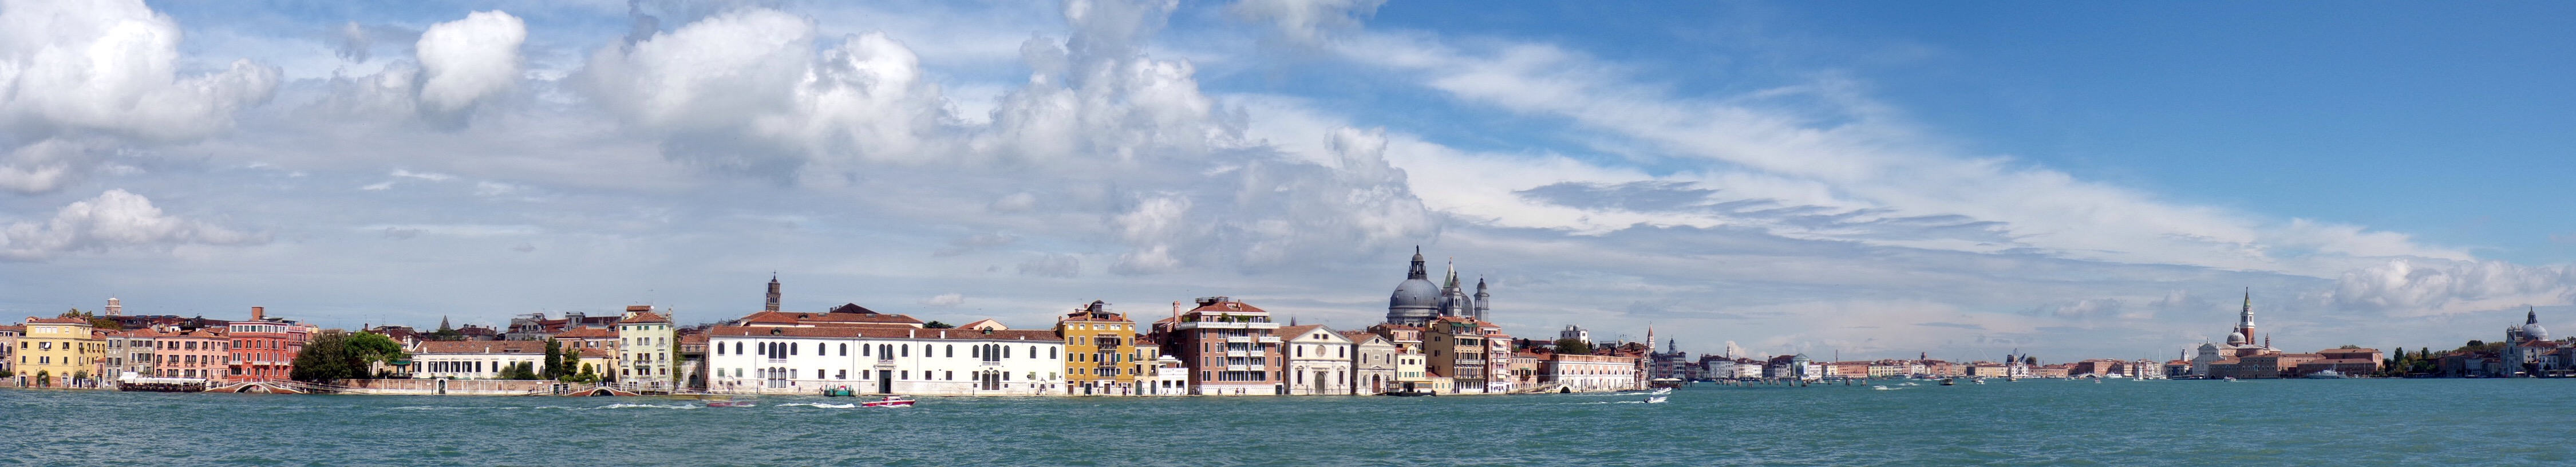 Venice from Giudecca. © Mari French 2016